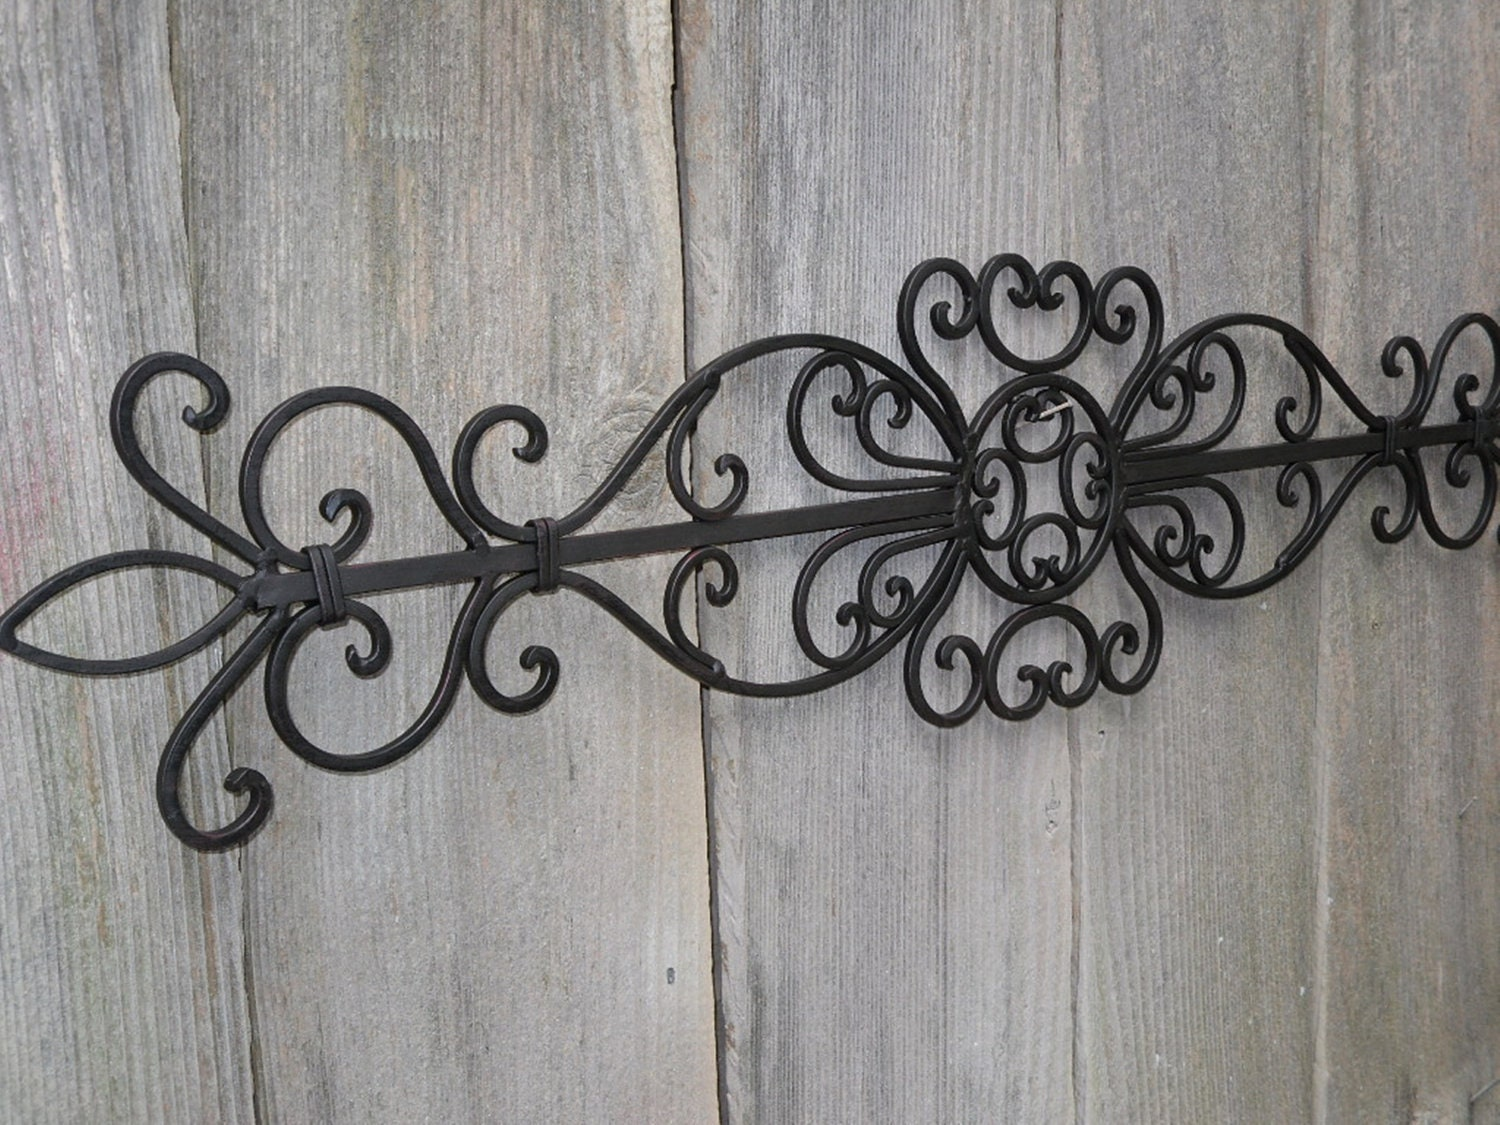 Wrought Iron Decorative Wall Pieces Fascinating Metal Home Decorating Accents  Home Design Ideas Inspiration Design